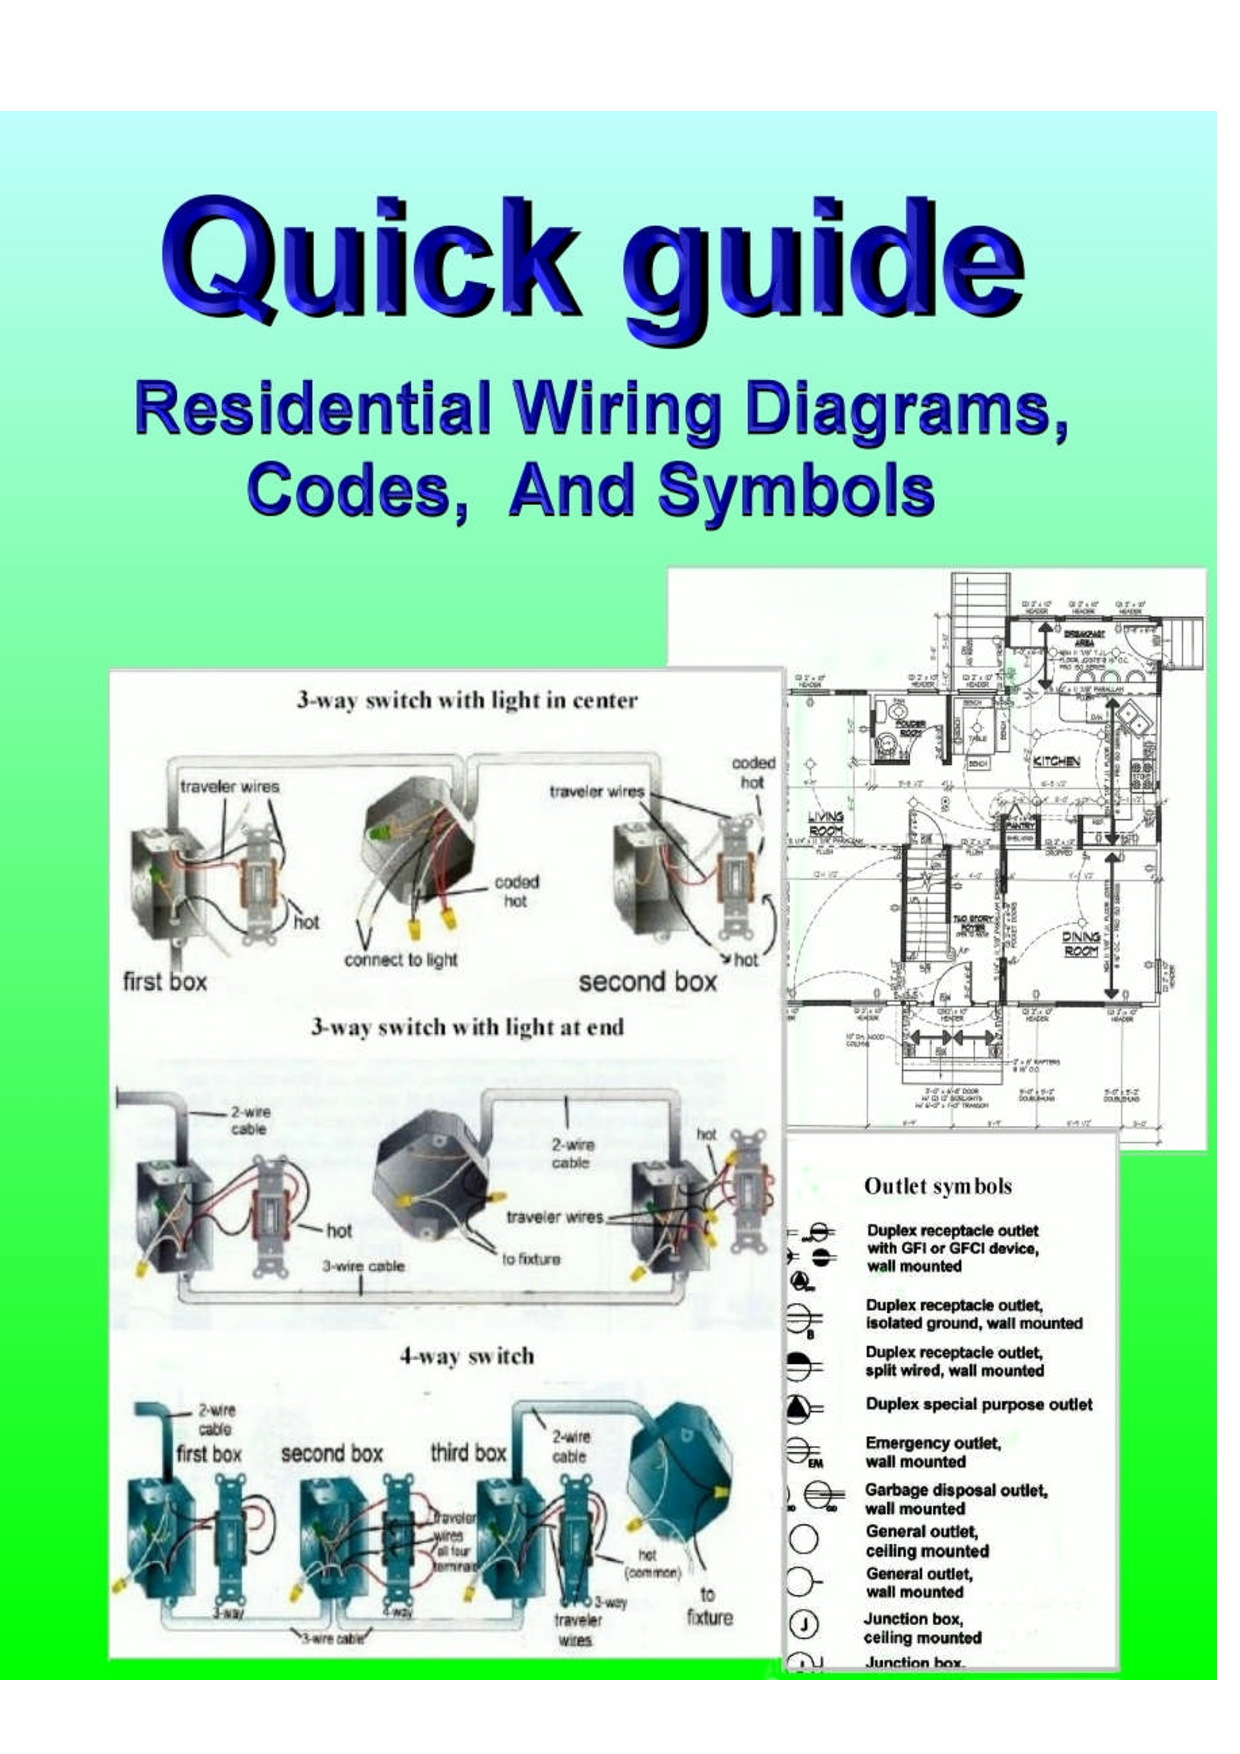 hight resolution of home electrical wiring diagrams pdf download legal documents 39 pages with many diagrams and illustrations a step by step home wiring guide with diagrams